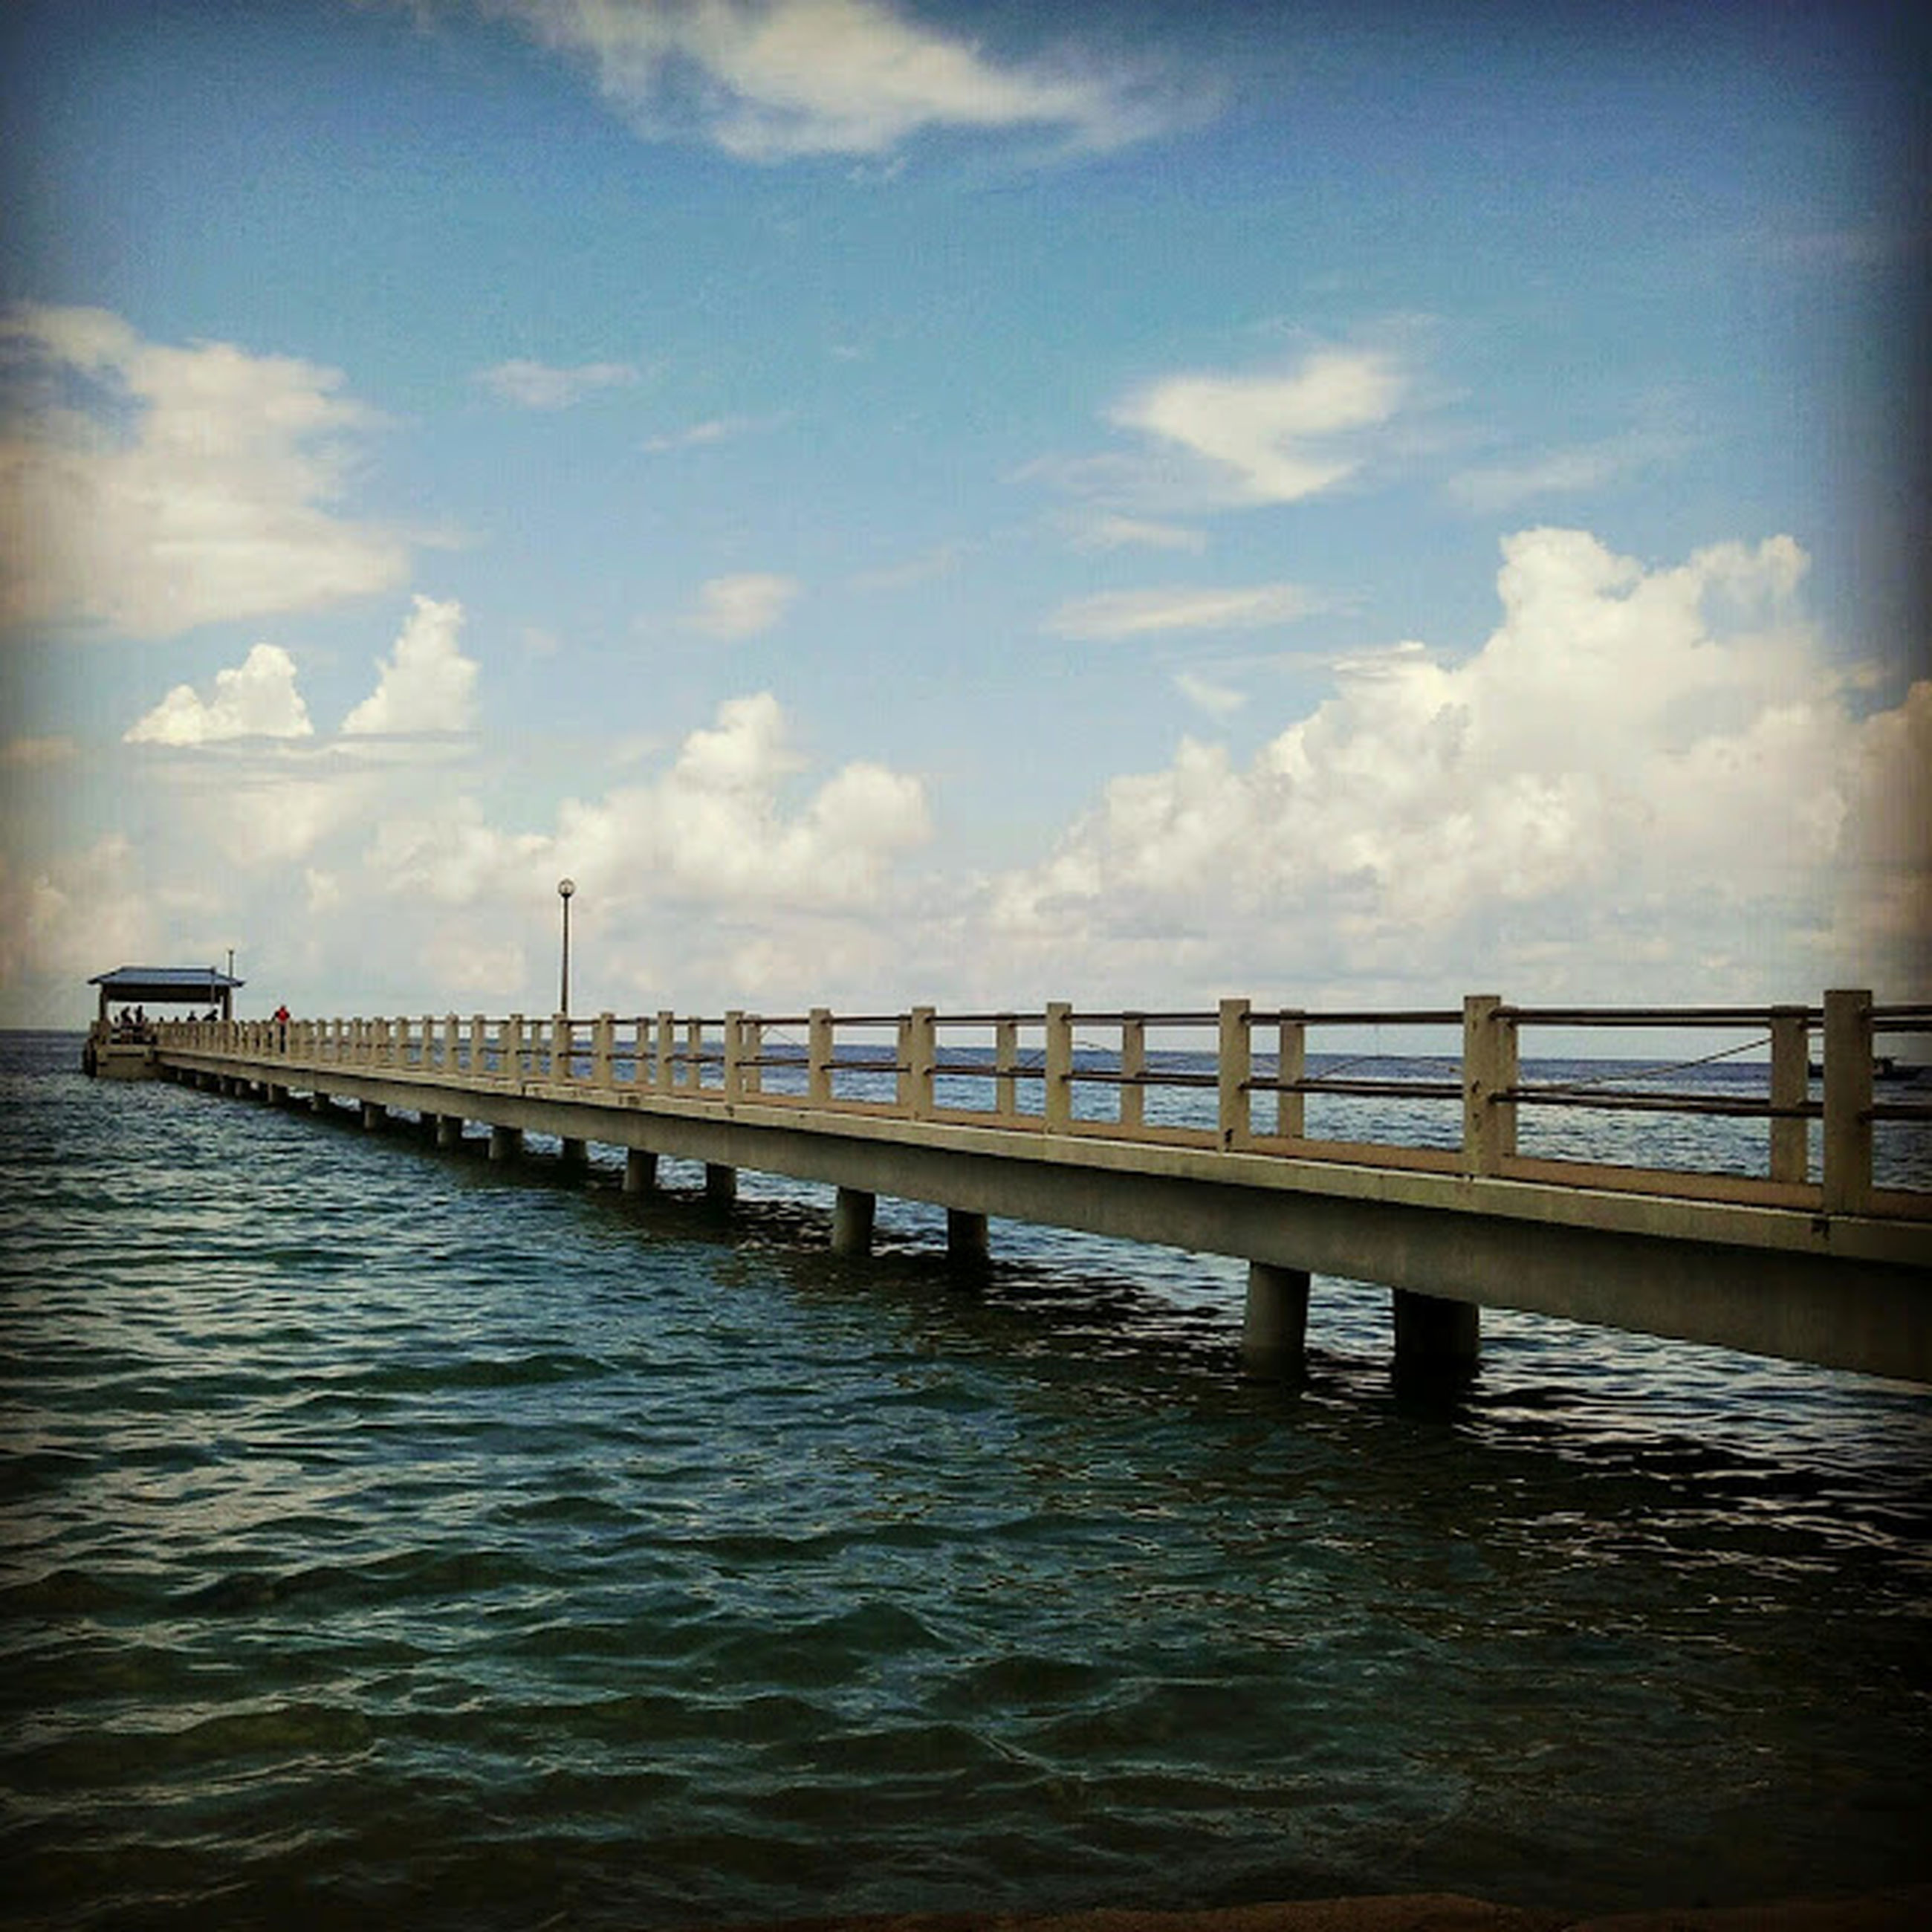 water, sea, sky, waterfront, pier, built structure, rippled, architecture, cloud - sky, tranquility, tranquil scene, nature, scenics, cloud, beauty in nature, connection, day, horizon over water, outdoors, blue